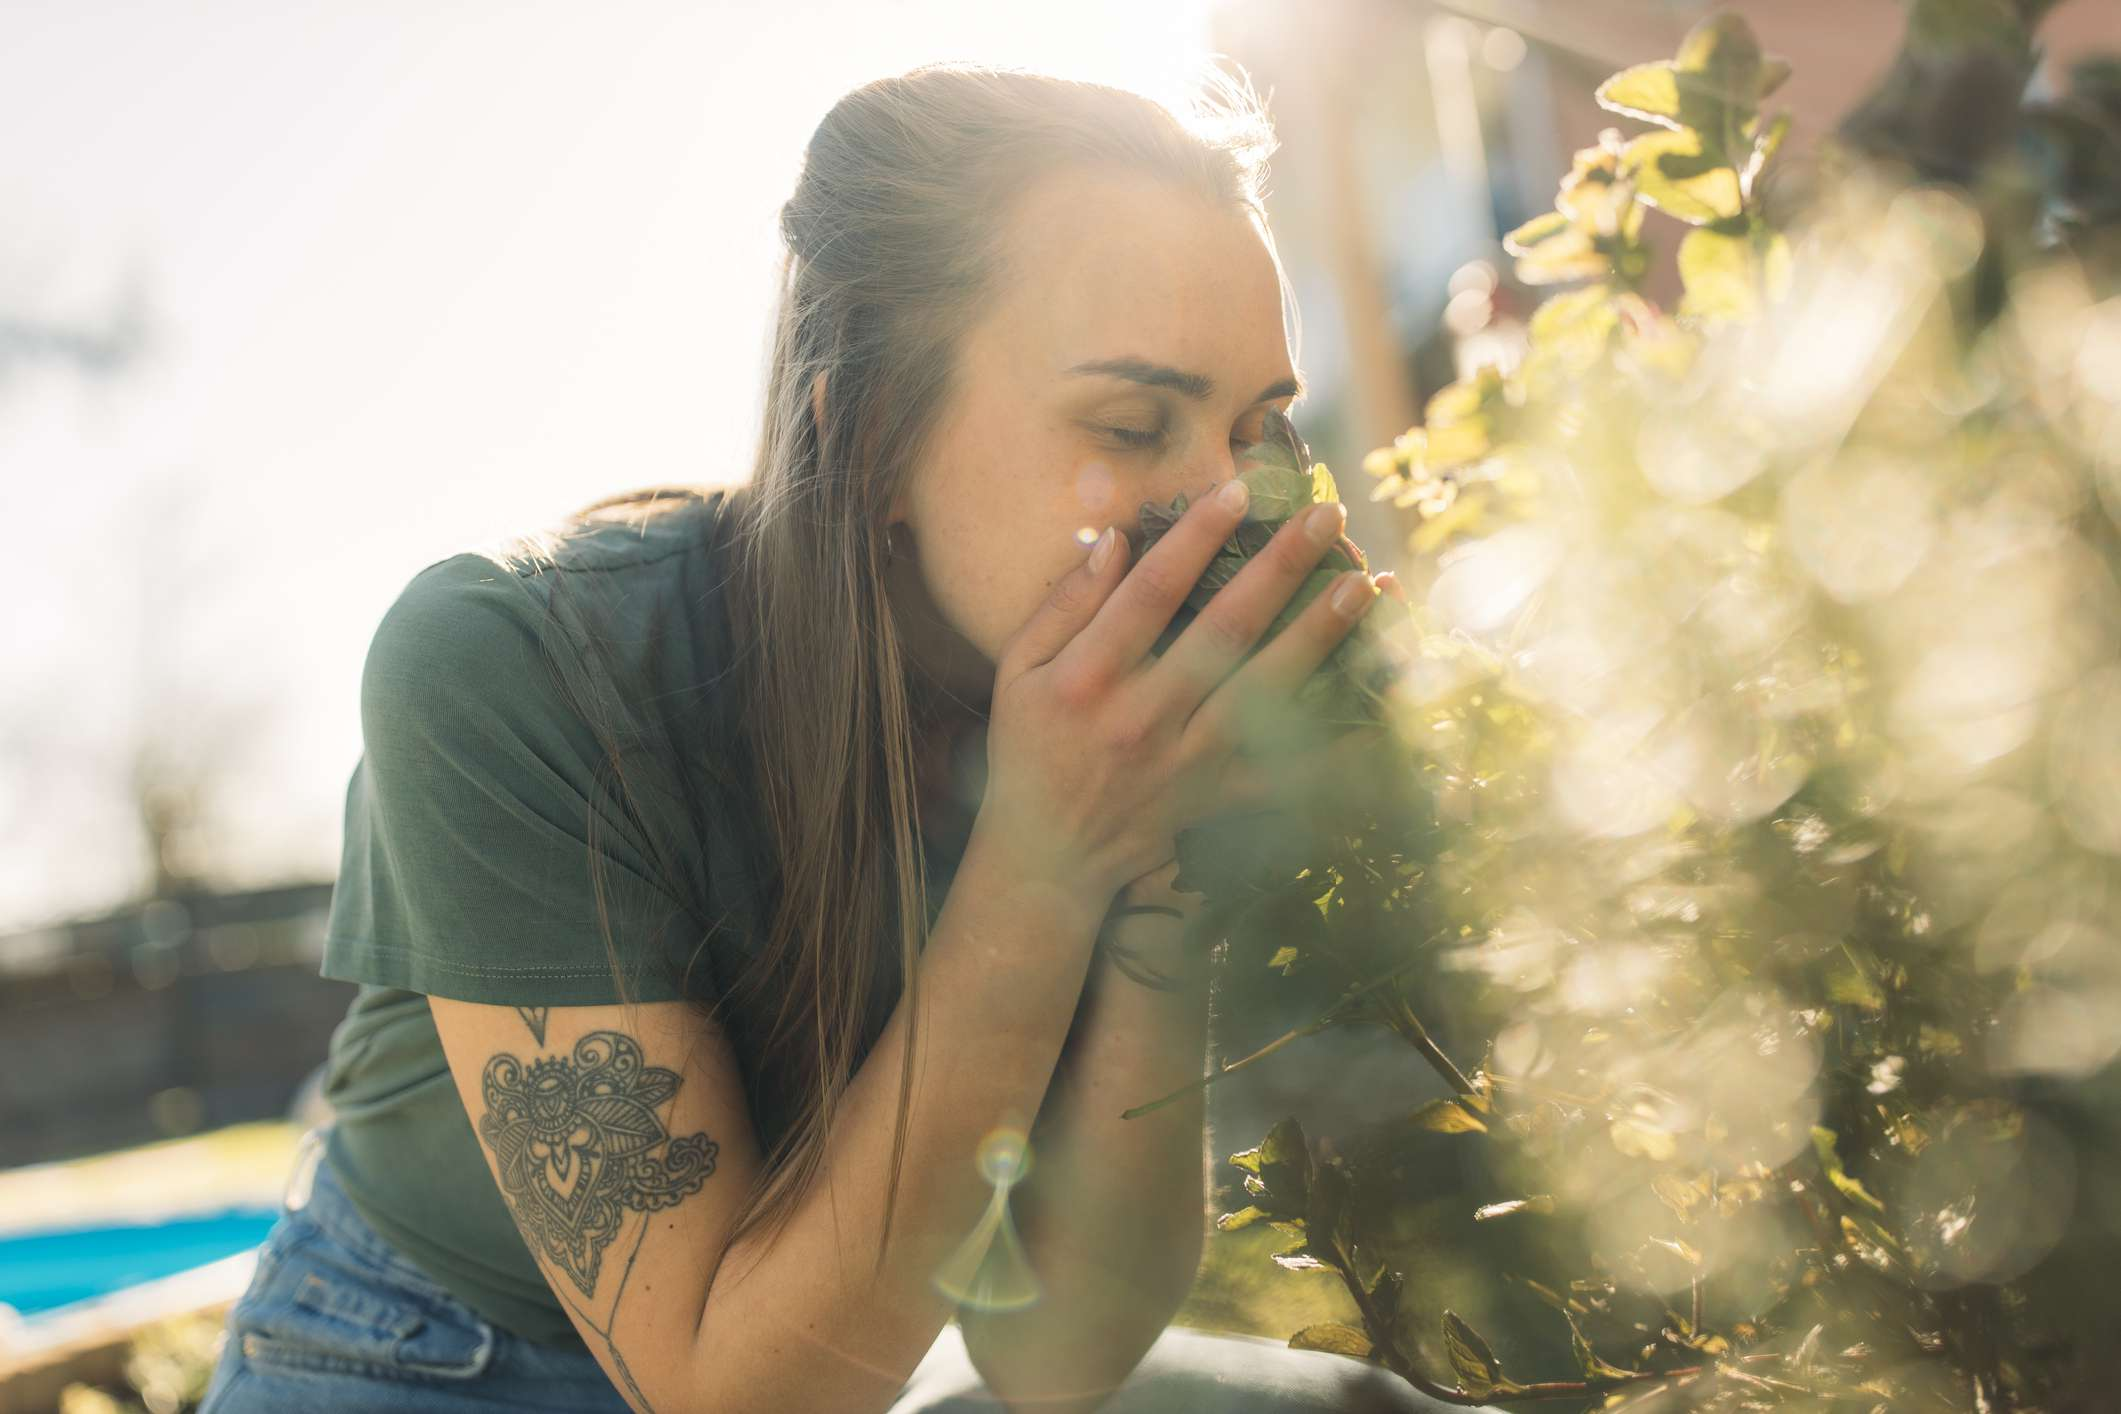 woman smelling herbs in a garden